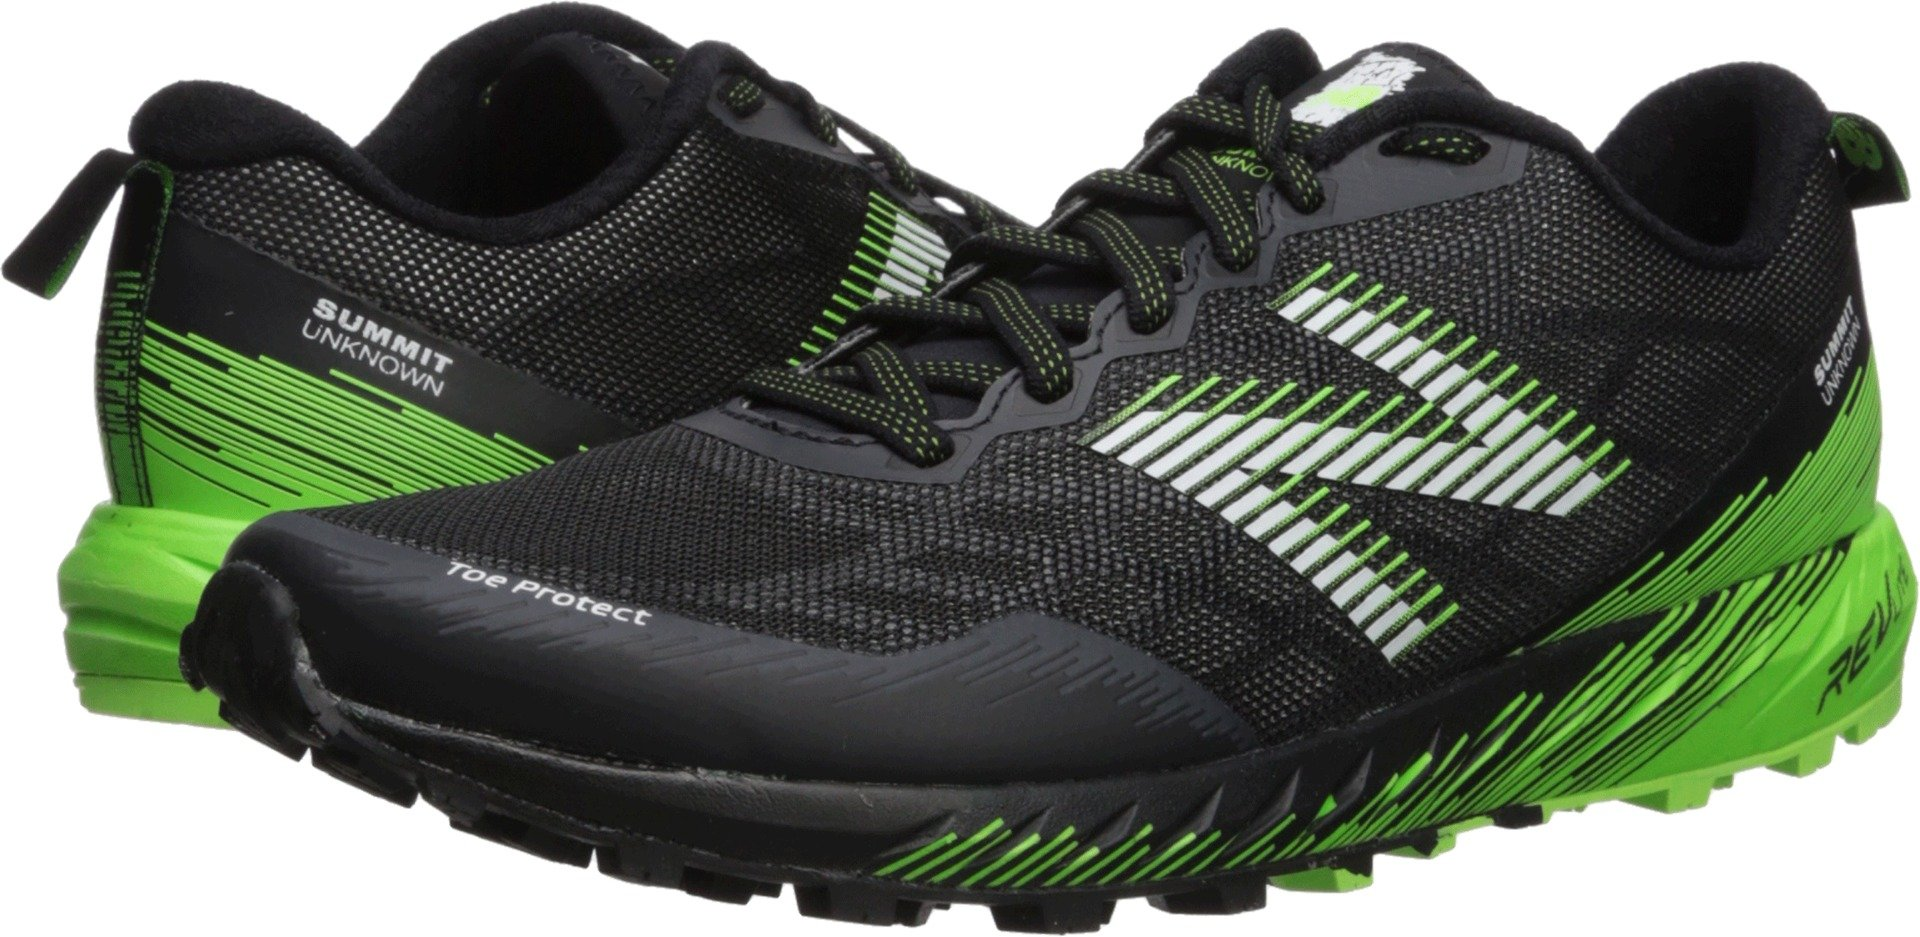 New Balance Men's Summit Unknown Trail Running Shoe, Black/Lime, 7.5 2E US